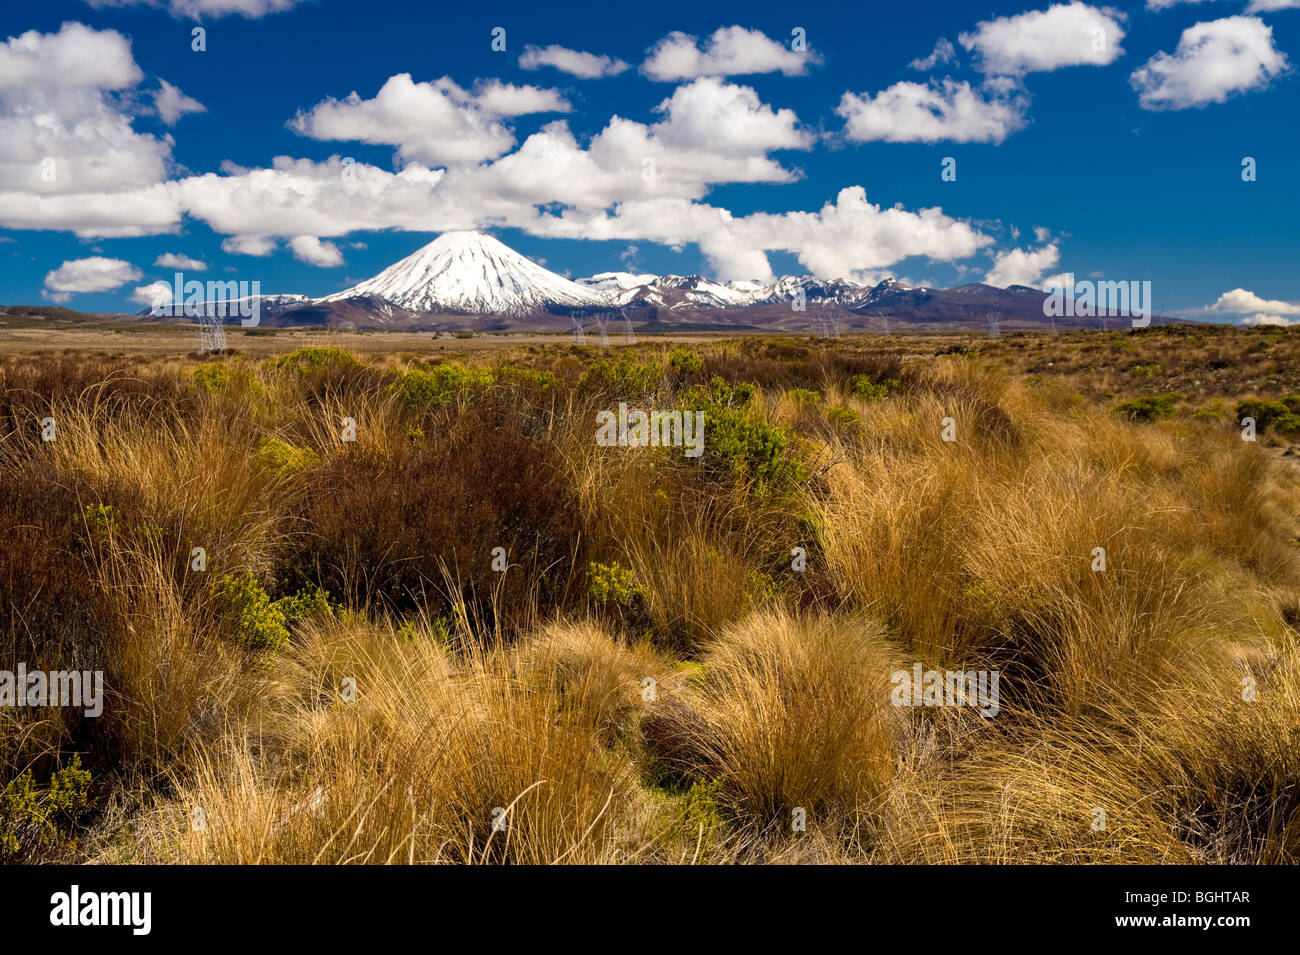 Tongariro National Park, North Island, New Zealand - Stock Image